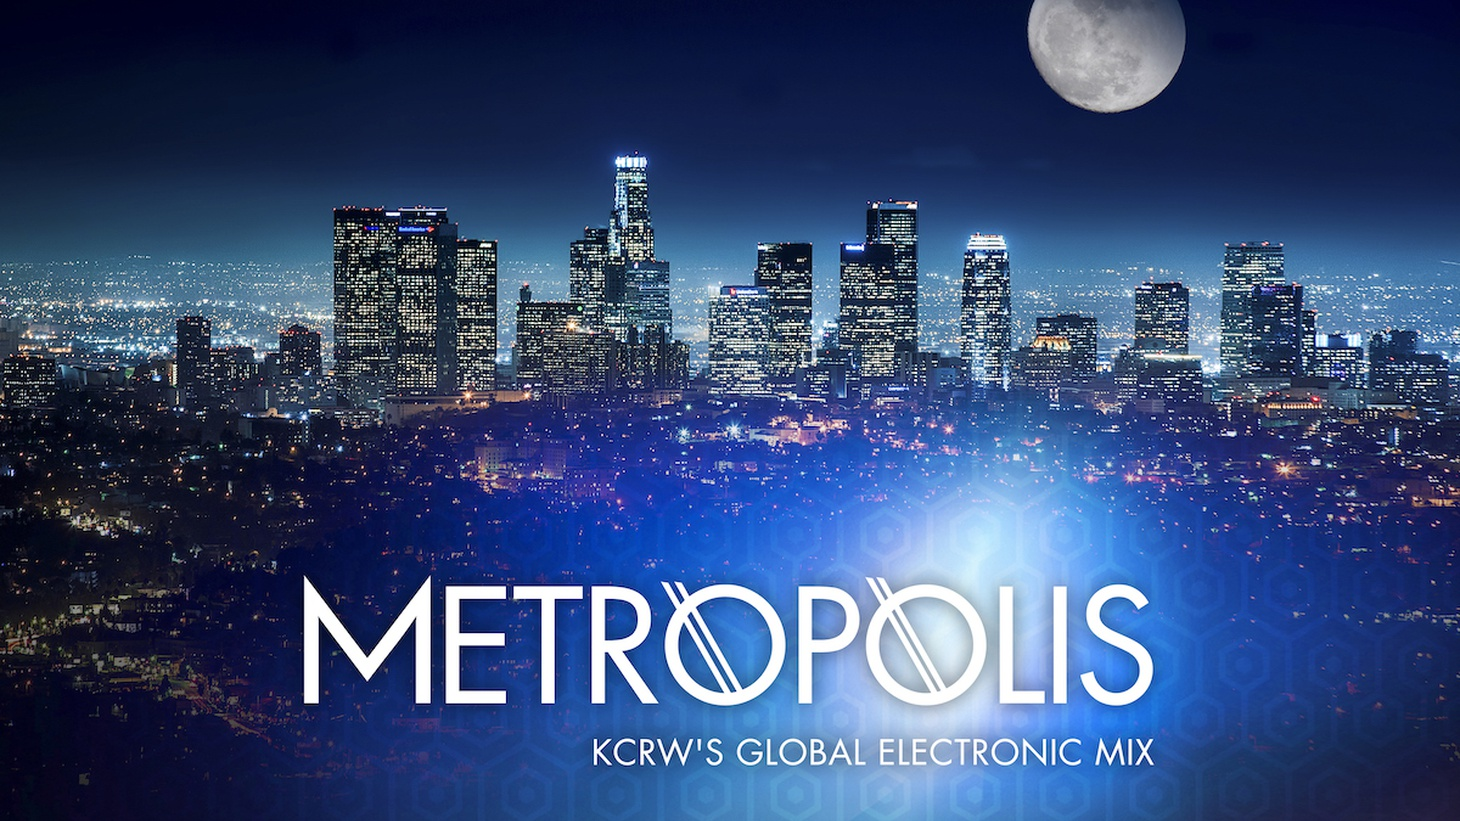 Breakbeat DJ/Producer Adam Freeland makes a surprise stop by Metropolis in the 9 o'clock hour for a guest DJ set.